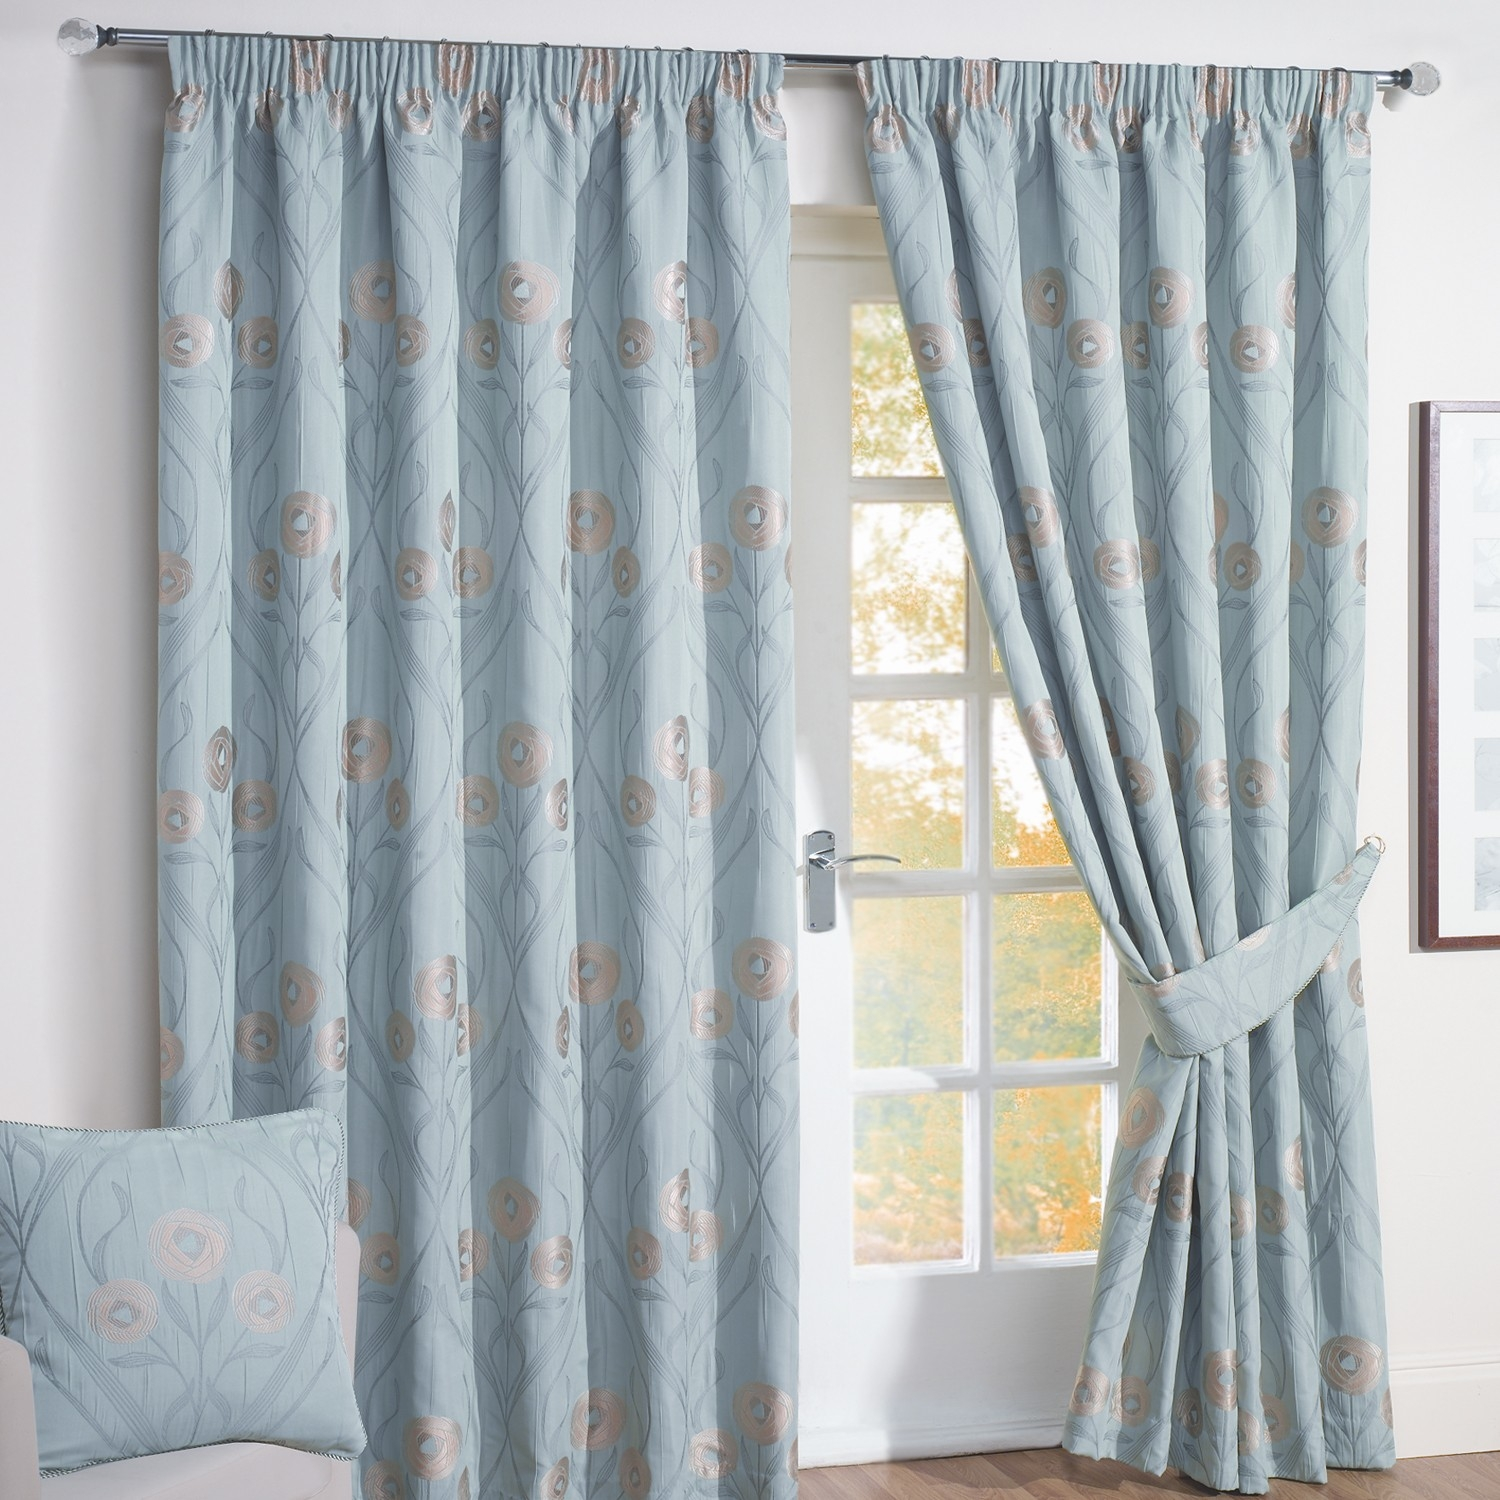 Montrose Duck Egg Blue Floral Jacquard Lined Curtains Pair Throughout Duck Egg Blue Blackout Curtains (Image 14 of 15)